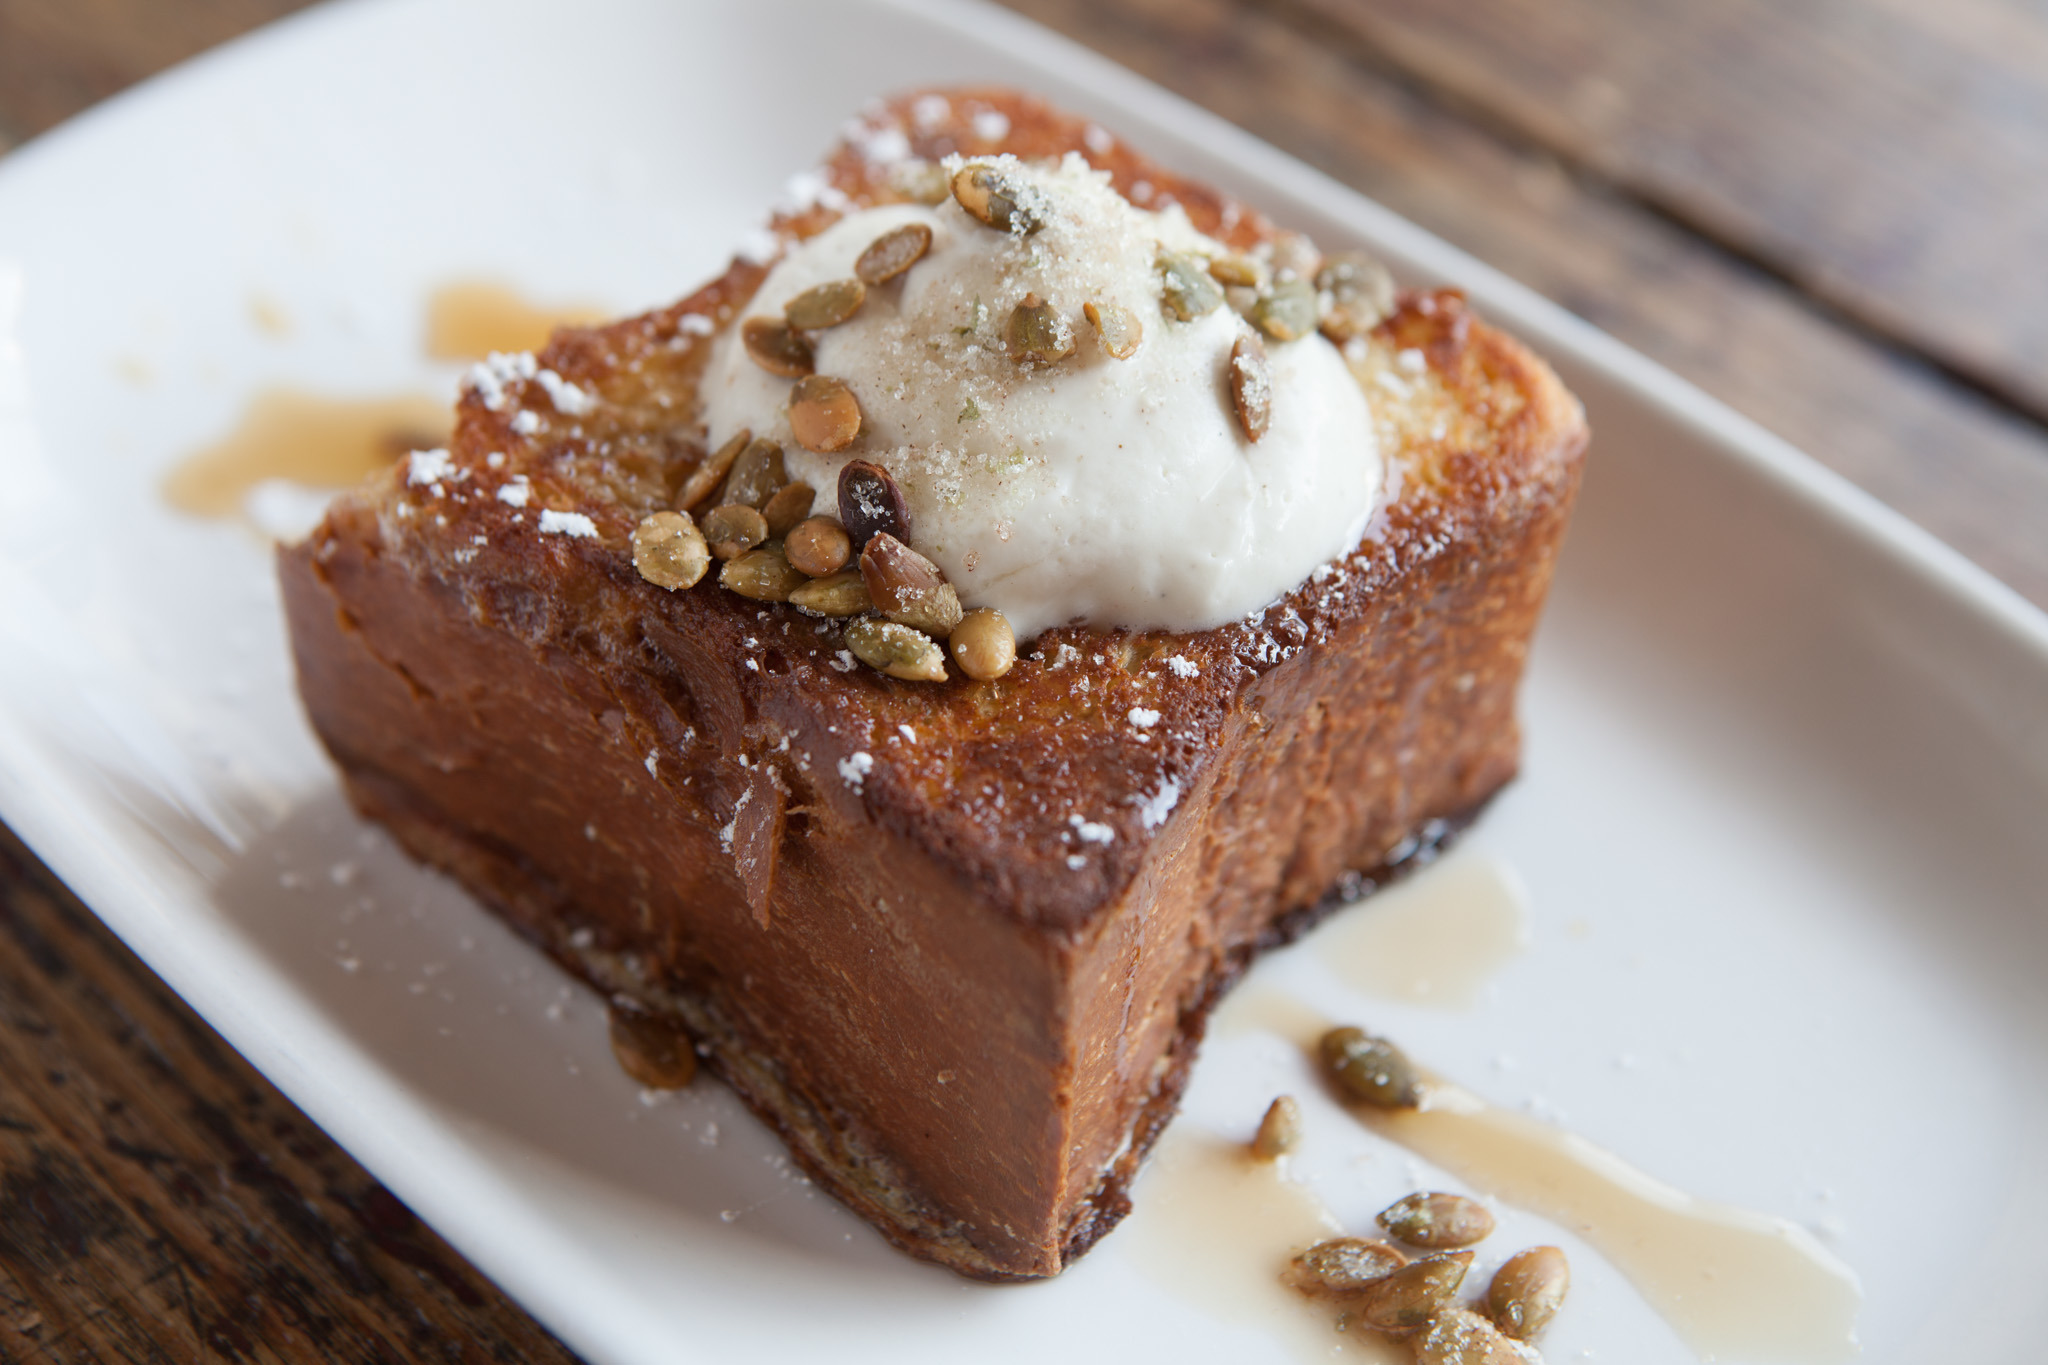 Best Brunch Restaurants Evanston